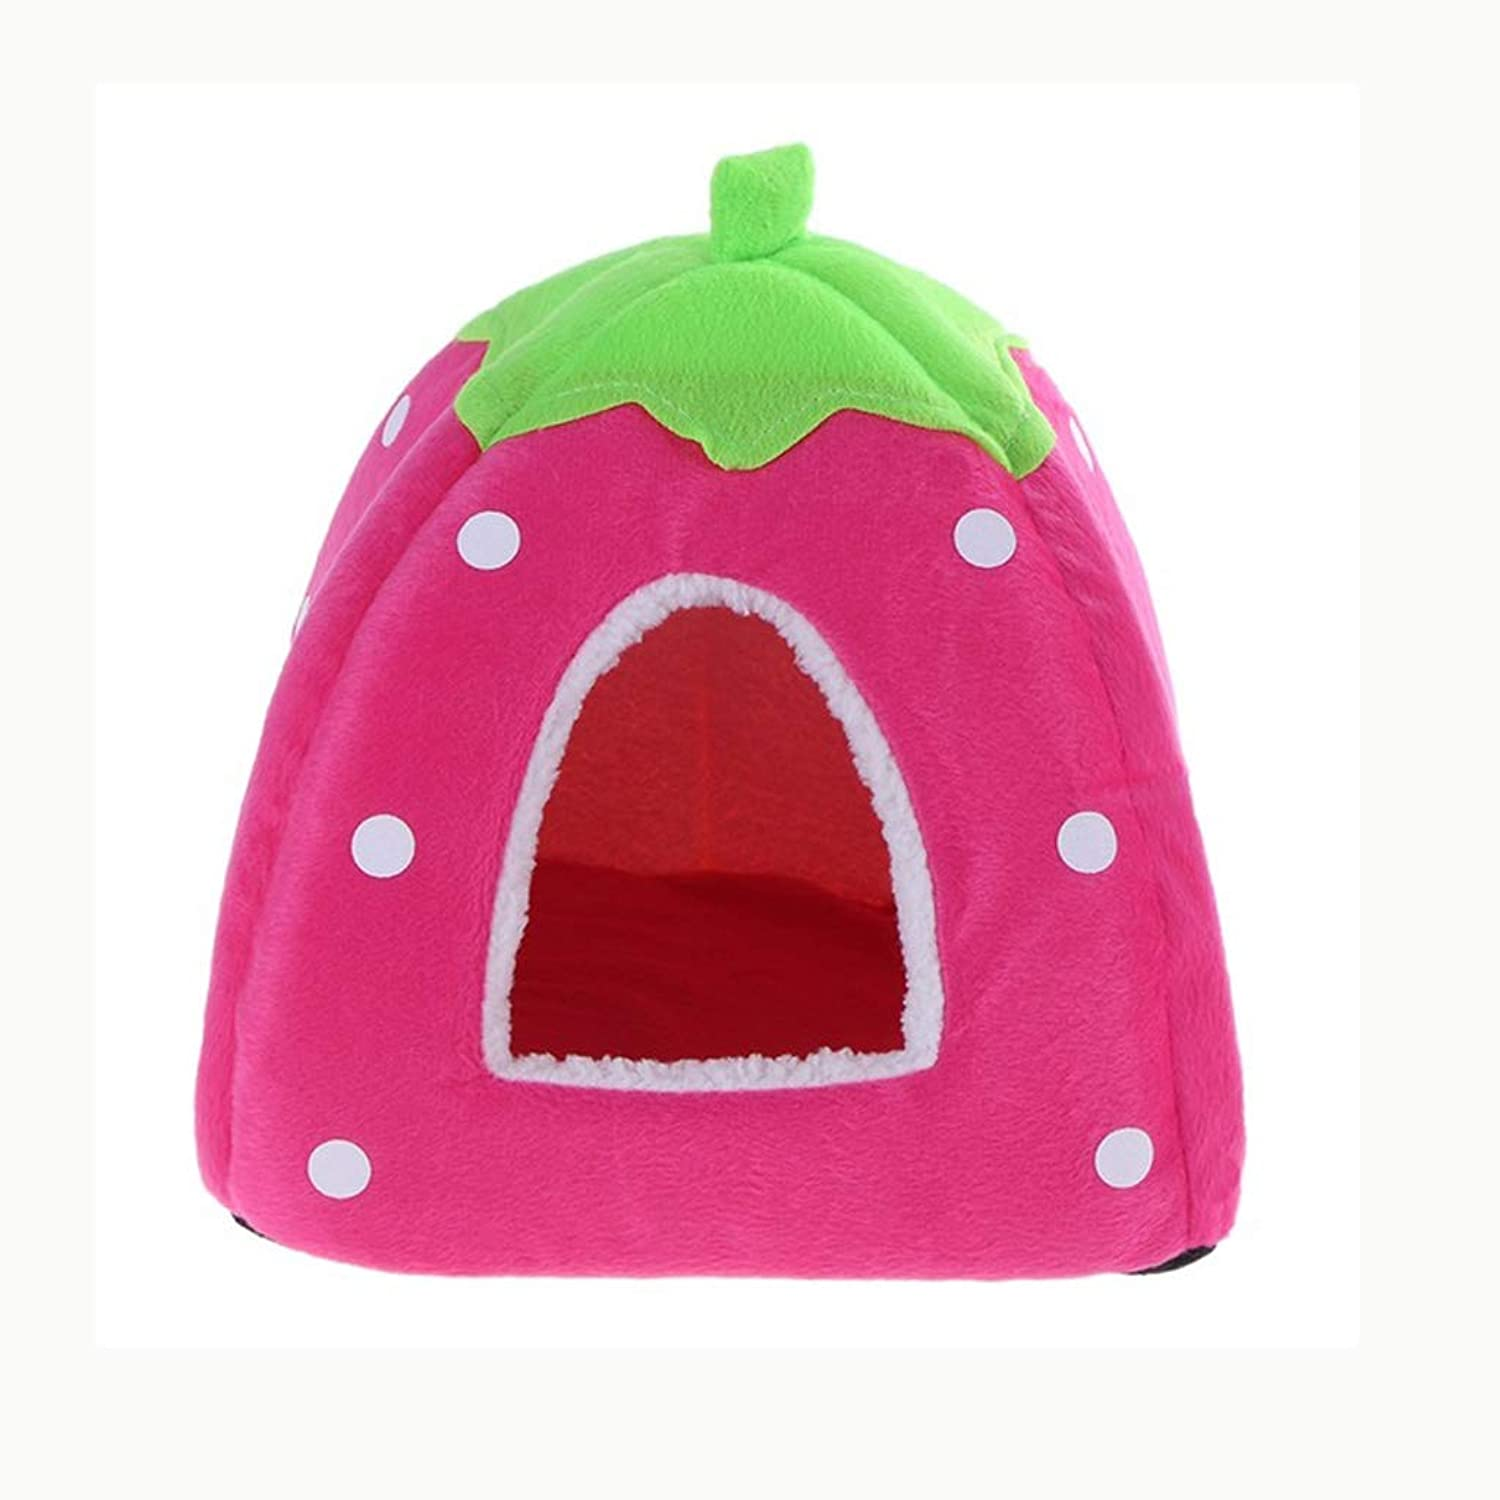 Cat House Foldable Leopard Strawberry Dog Bed Animal Cave Puppy Kennel Soft Pet Cat Dog House S M L XL XXL (color   Pink, Size   M)